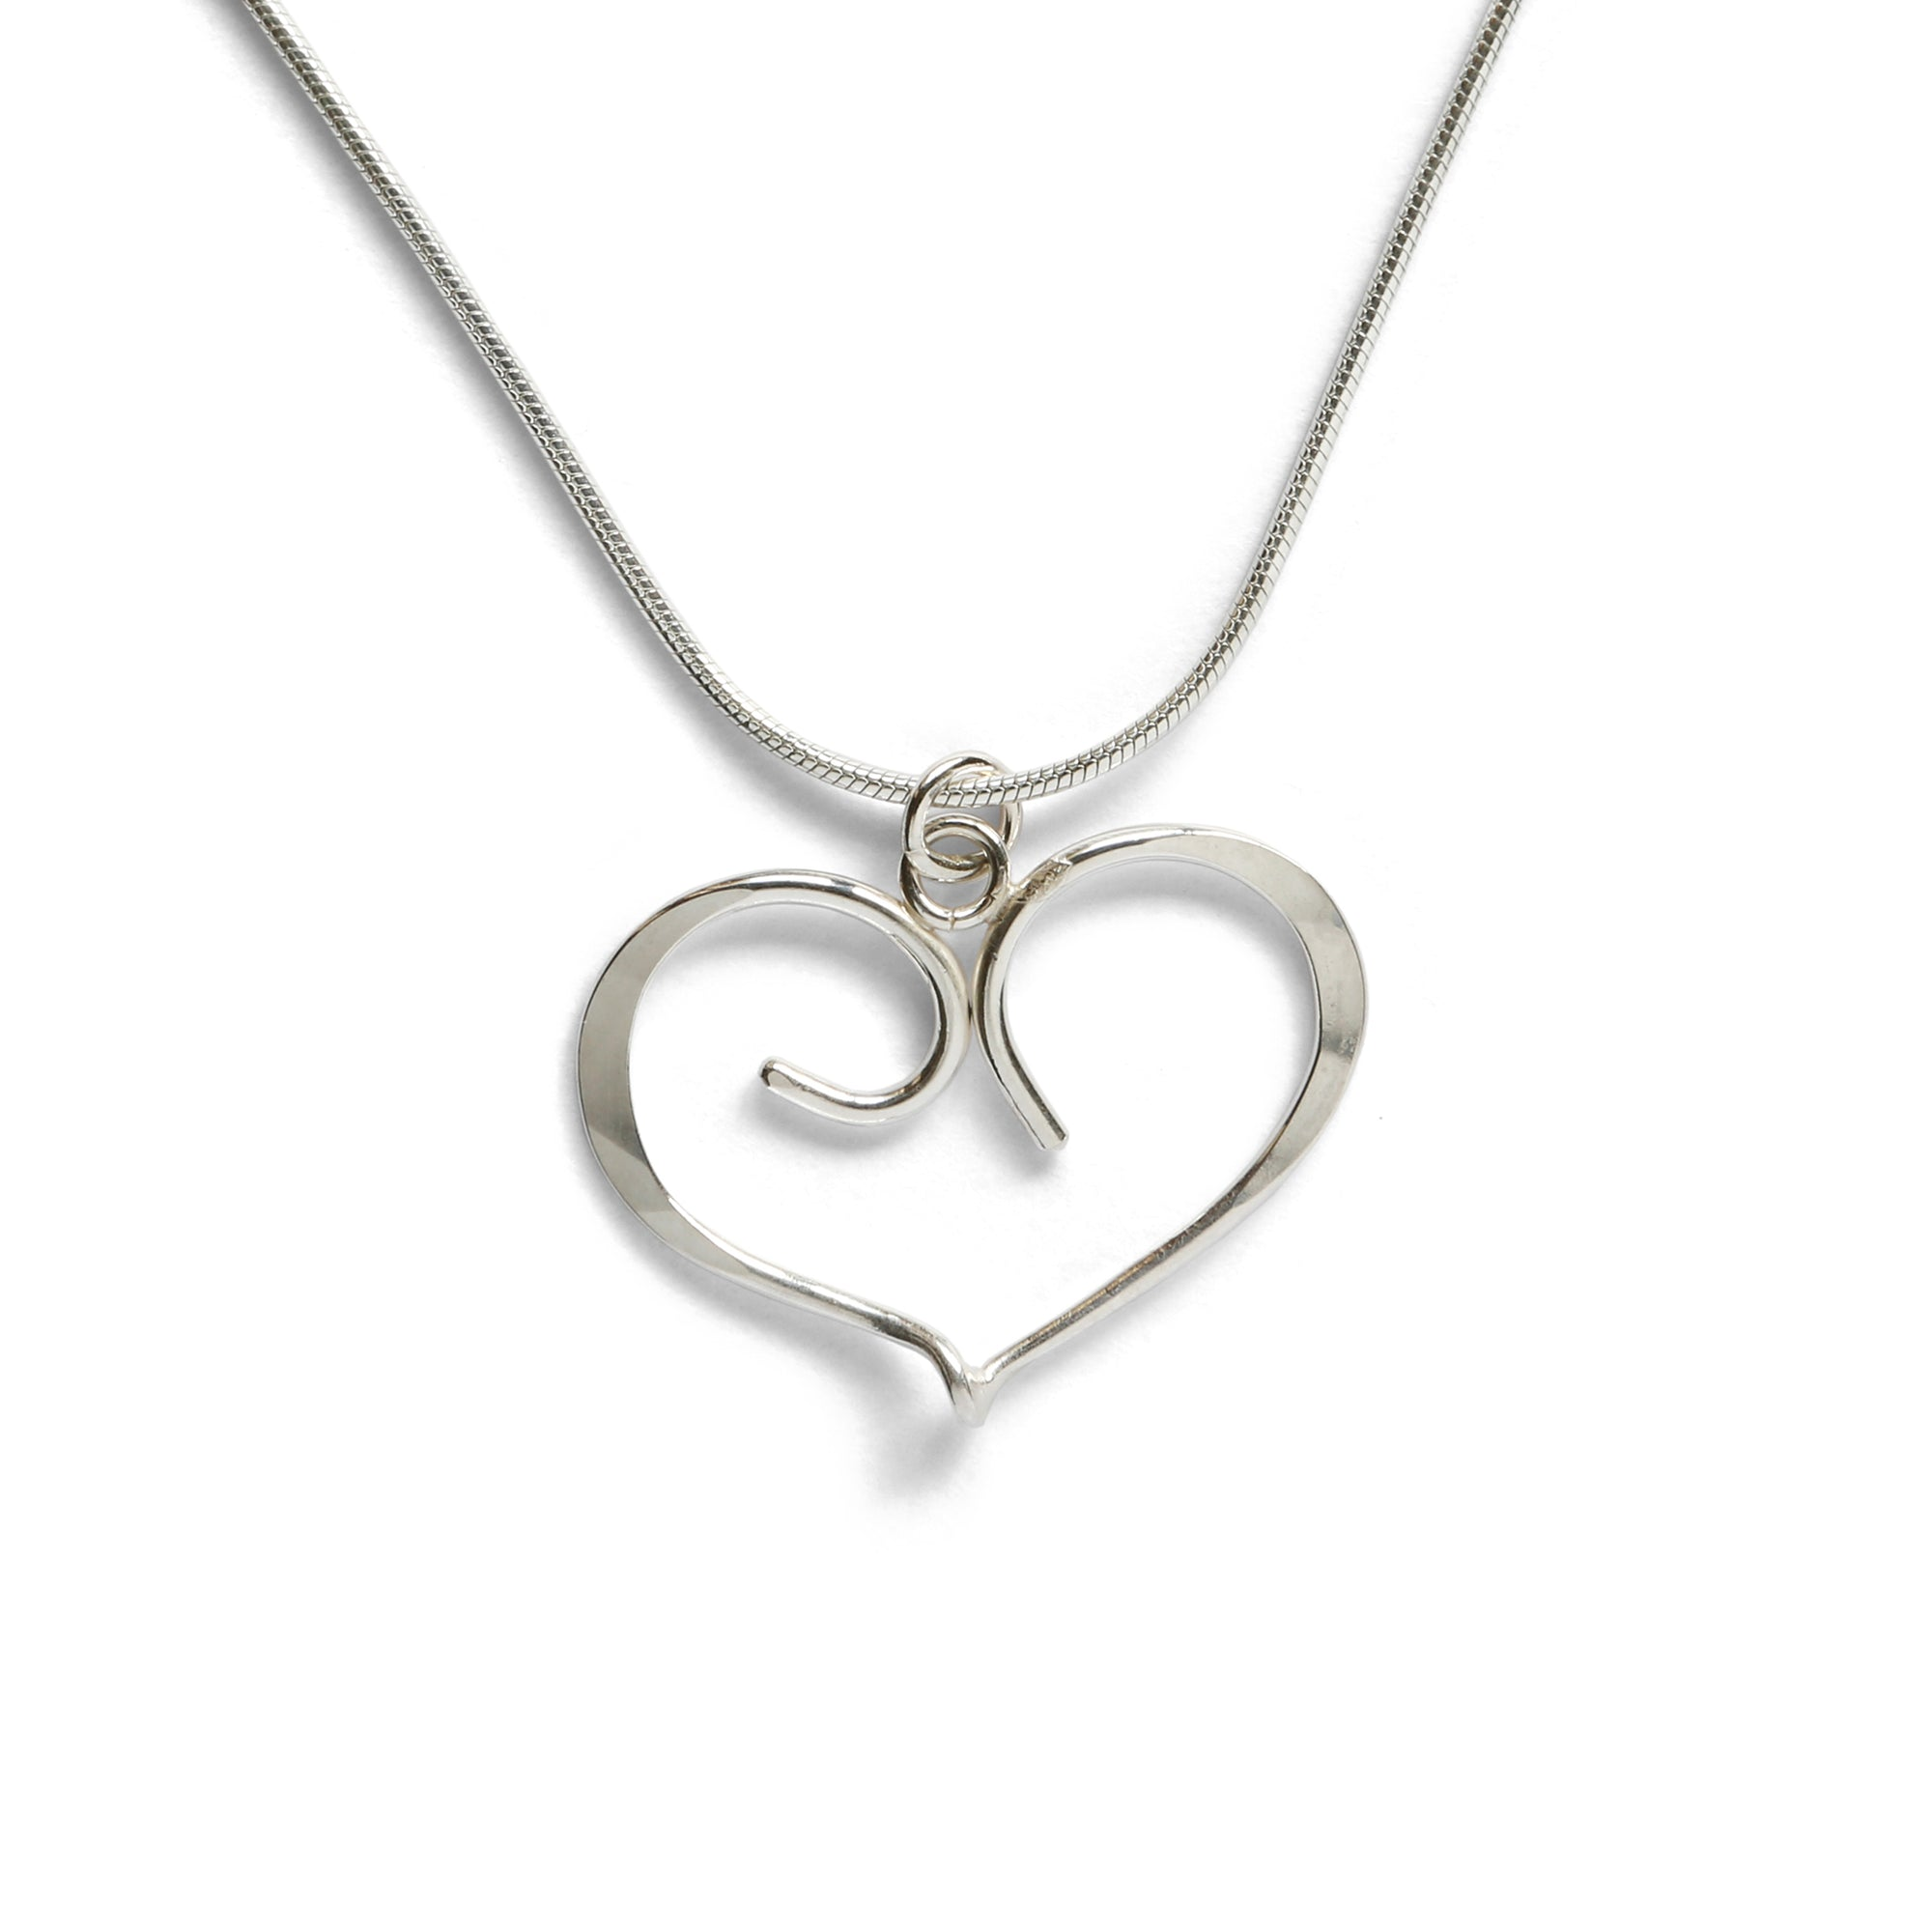 Forged Heart Necklace